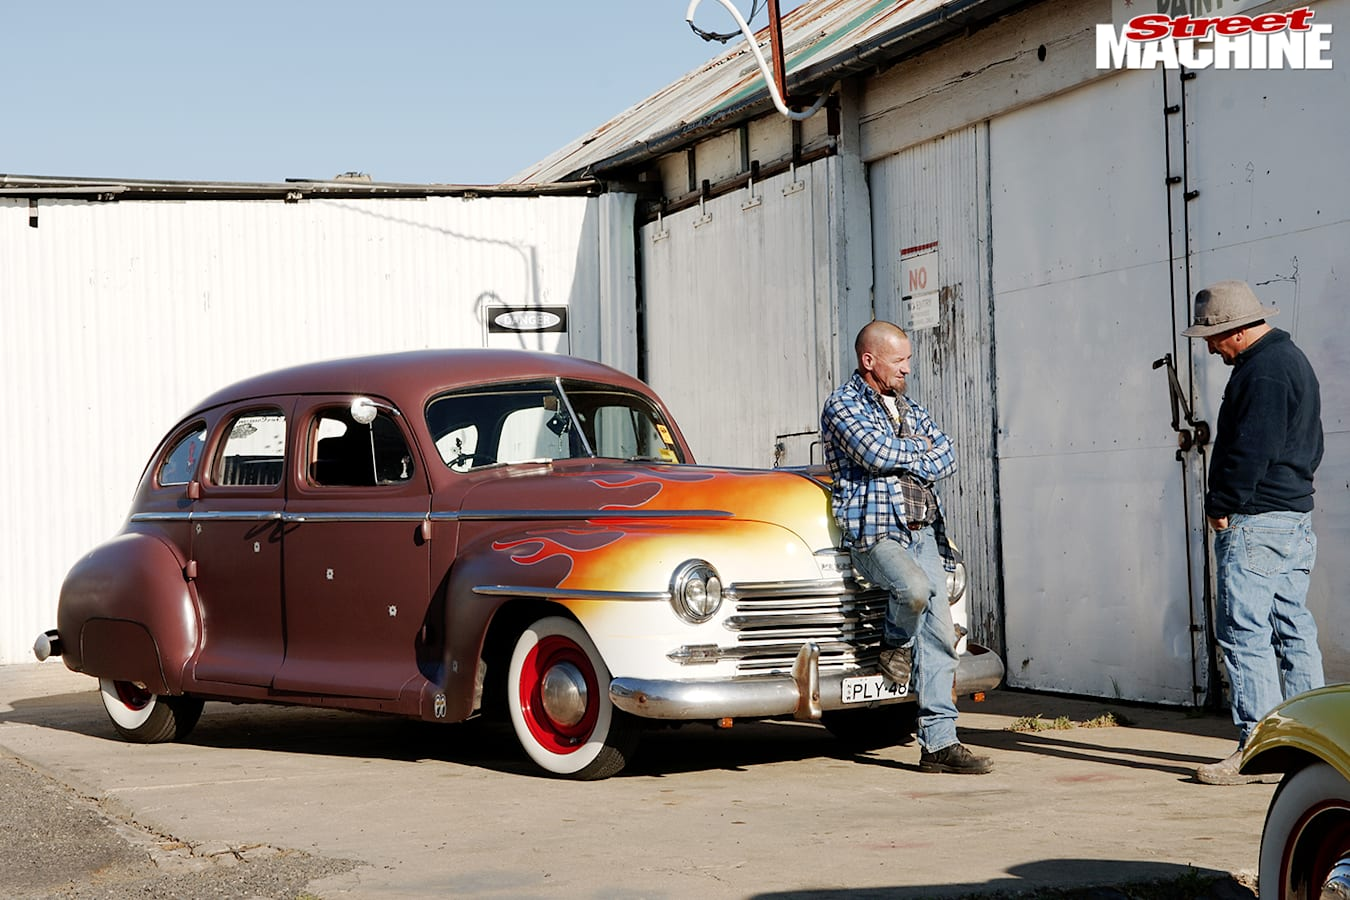 Street Machine Features Townsend Family Hot Rods 4